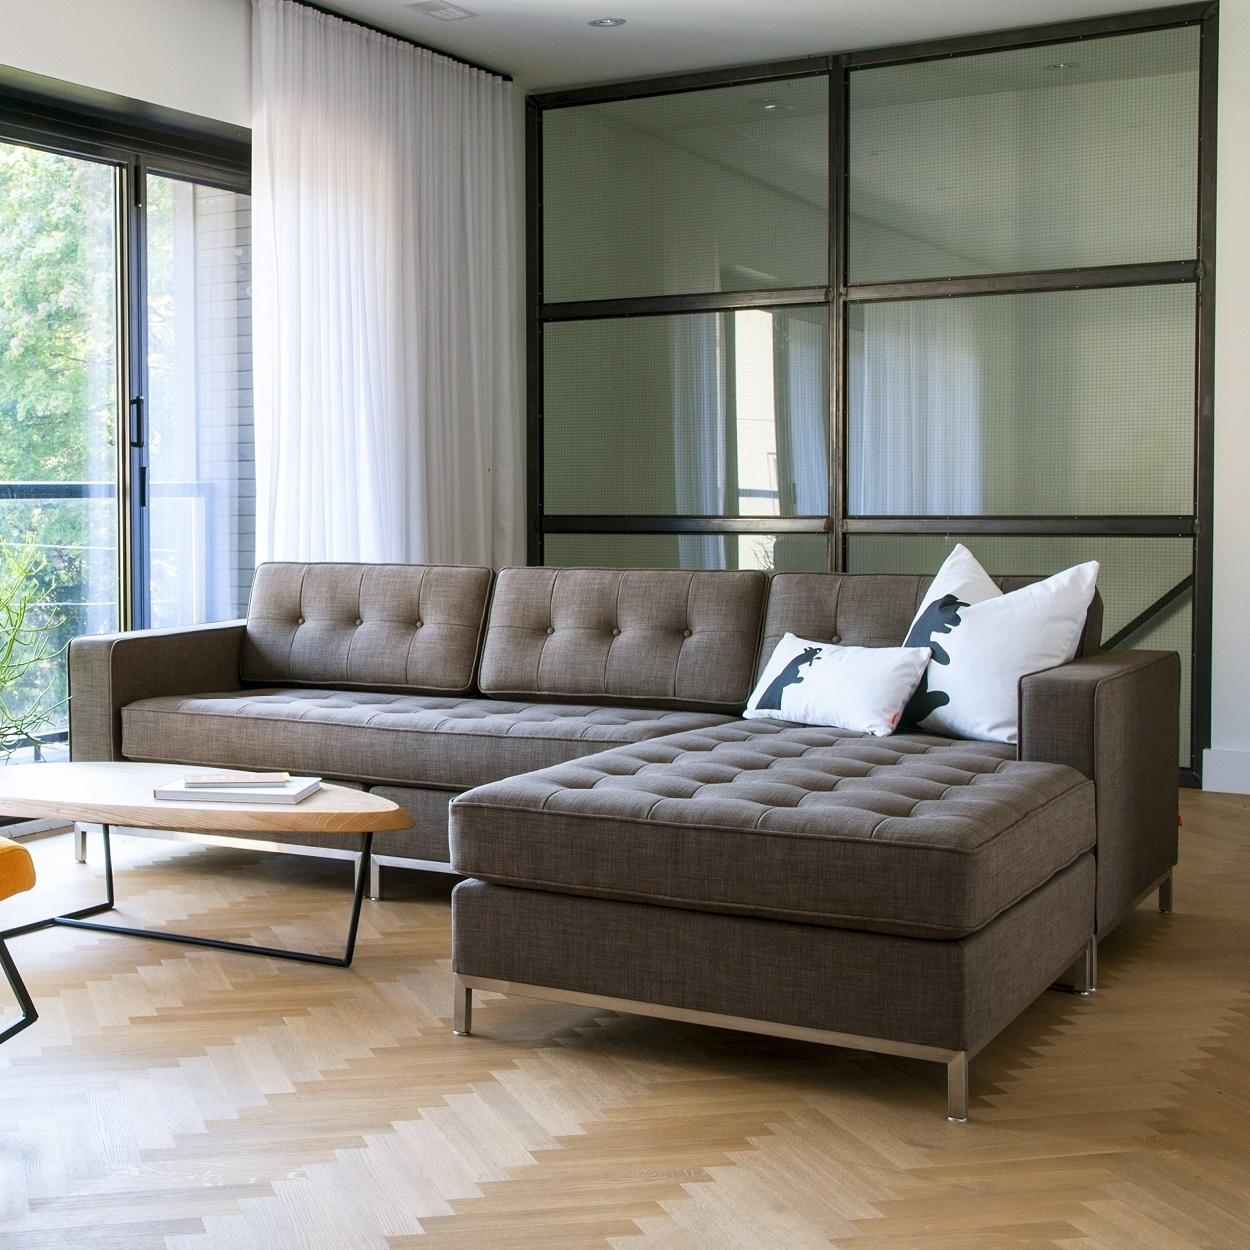 Gus Modern Furniture 2015 Summer Sale | Zin Home Blog Regarding Jane Bi Sectional Sofa (Image 3 of 20)